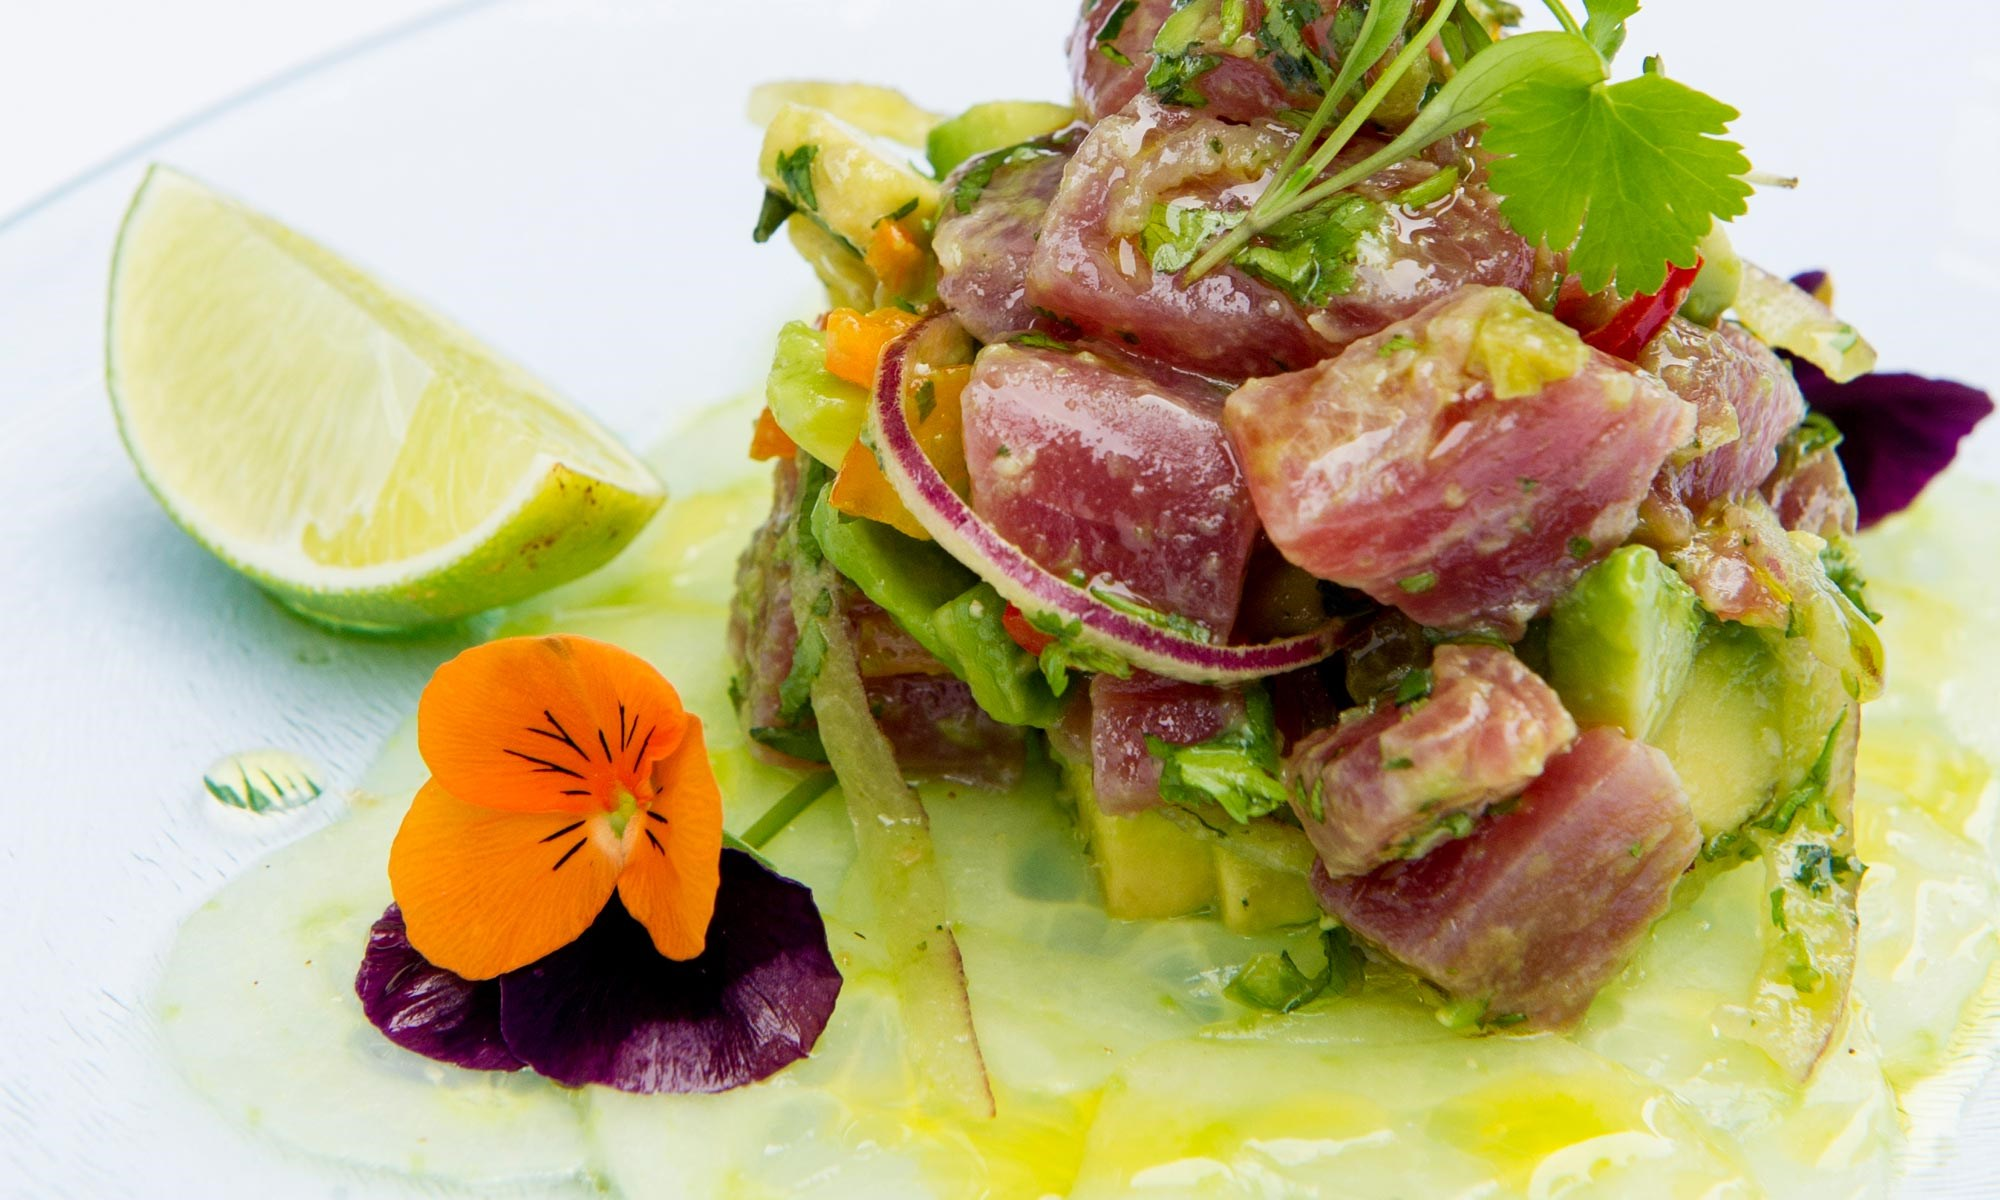 j sheekey tuna tartar with cucumber aji amarillo avocado by sim canetty clarke